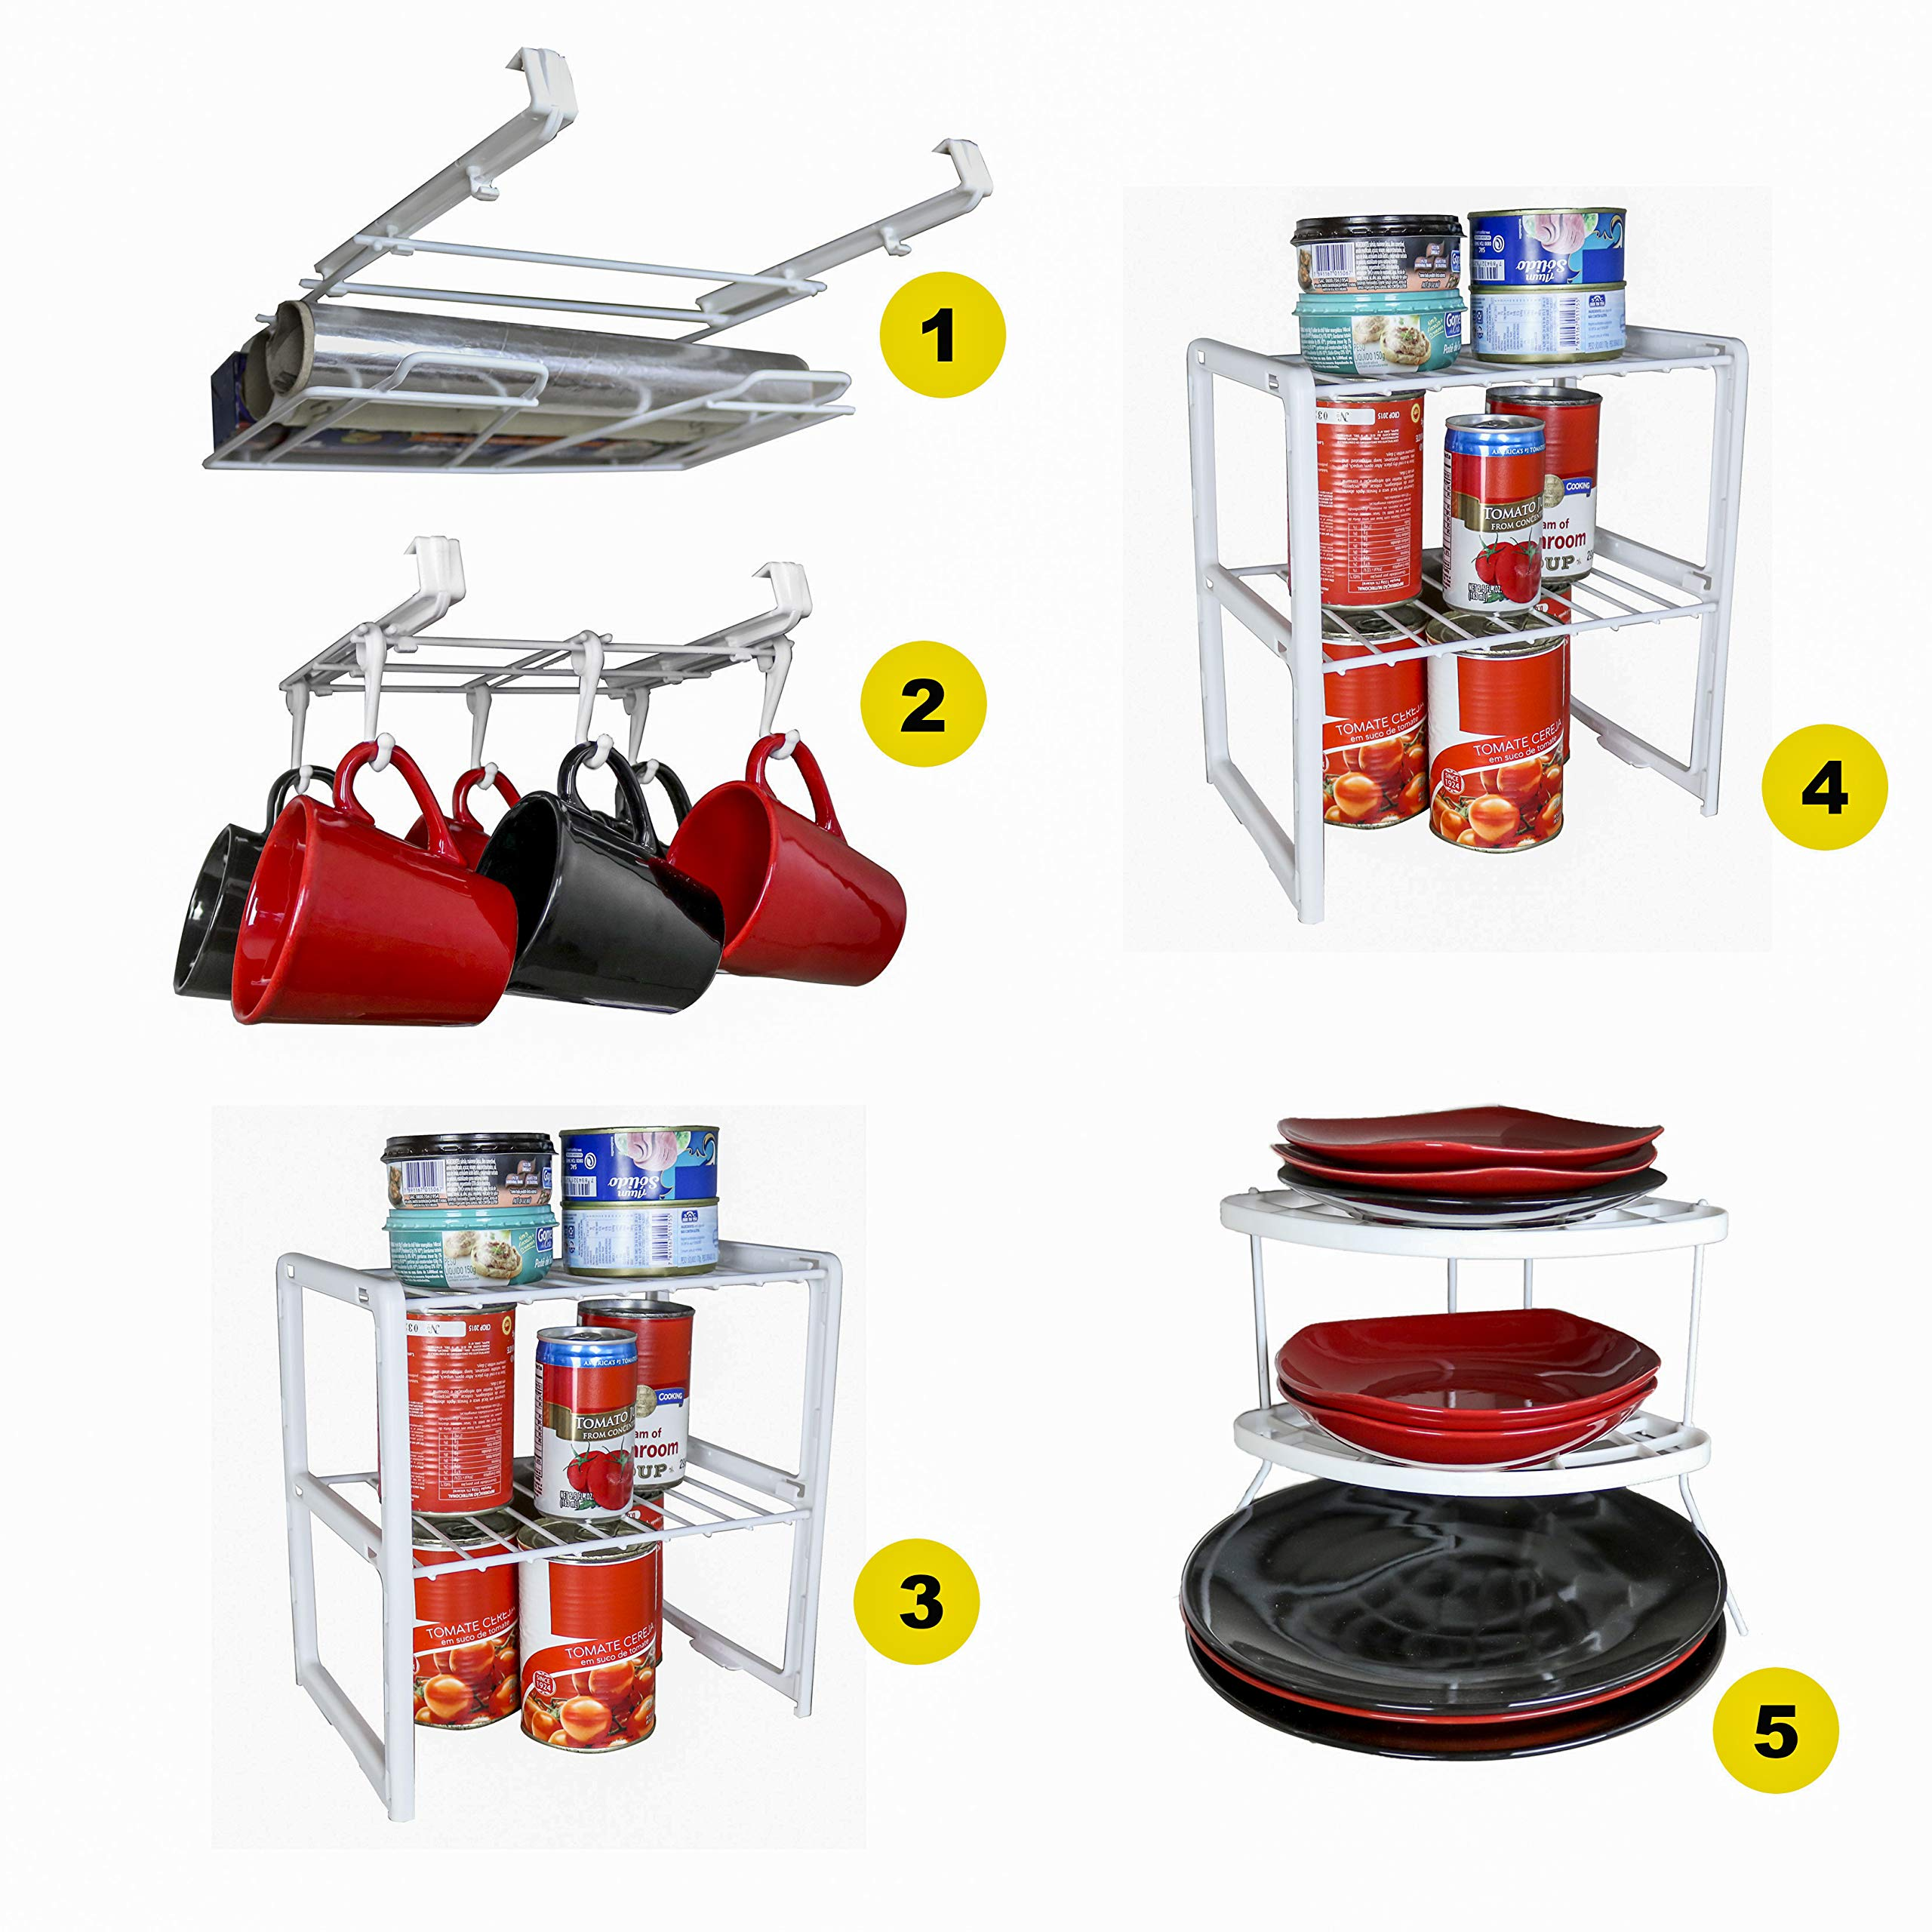 5 Pieces Cabinet Organizer Set - 1 Undershelf Placemat and Wrap Holder, 1 Undershelf Mug Rack, 2 Double Cabinet Shelf, 1 Corner Plate Rack